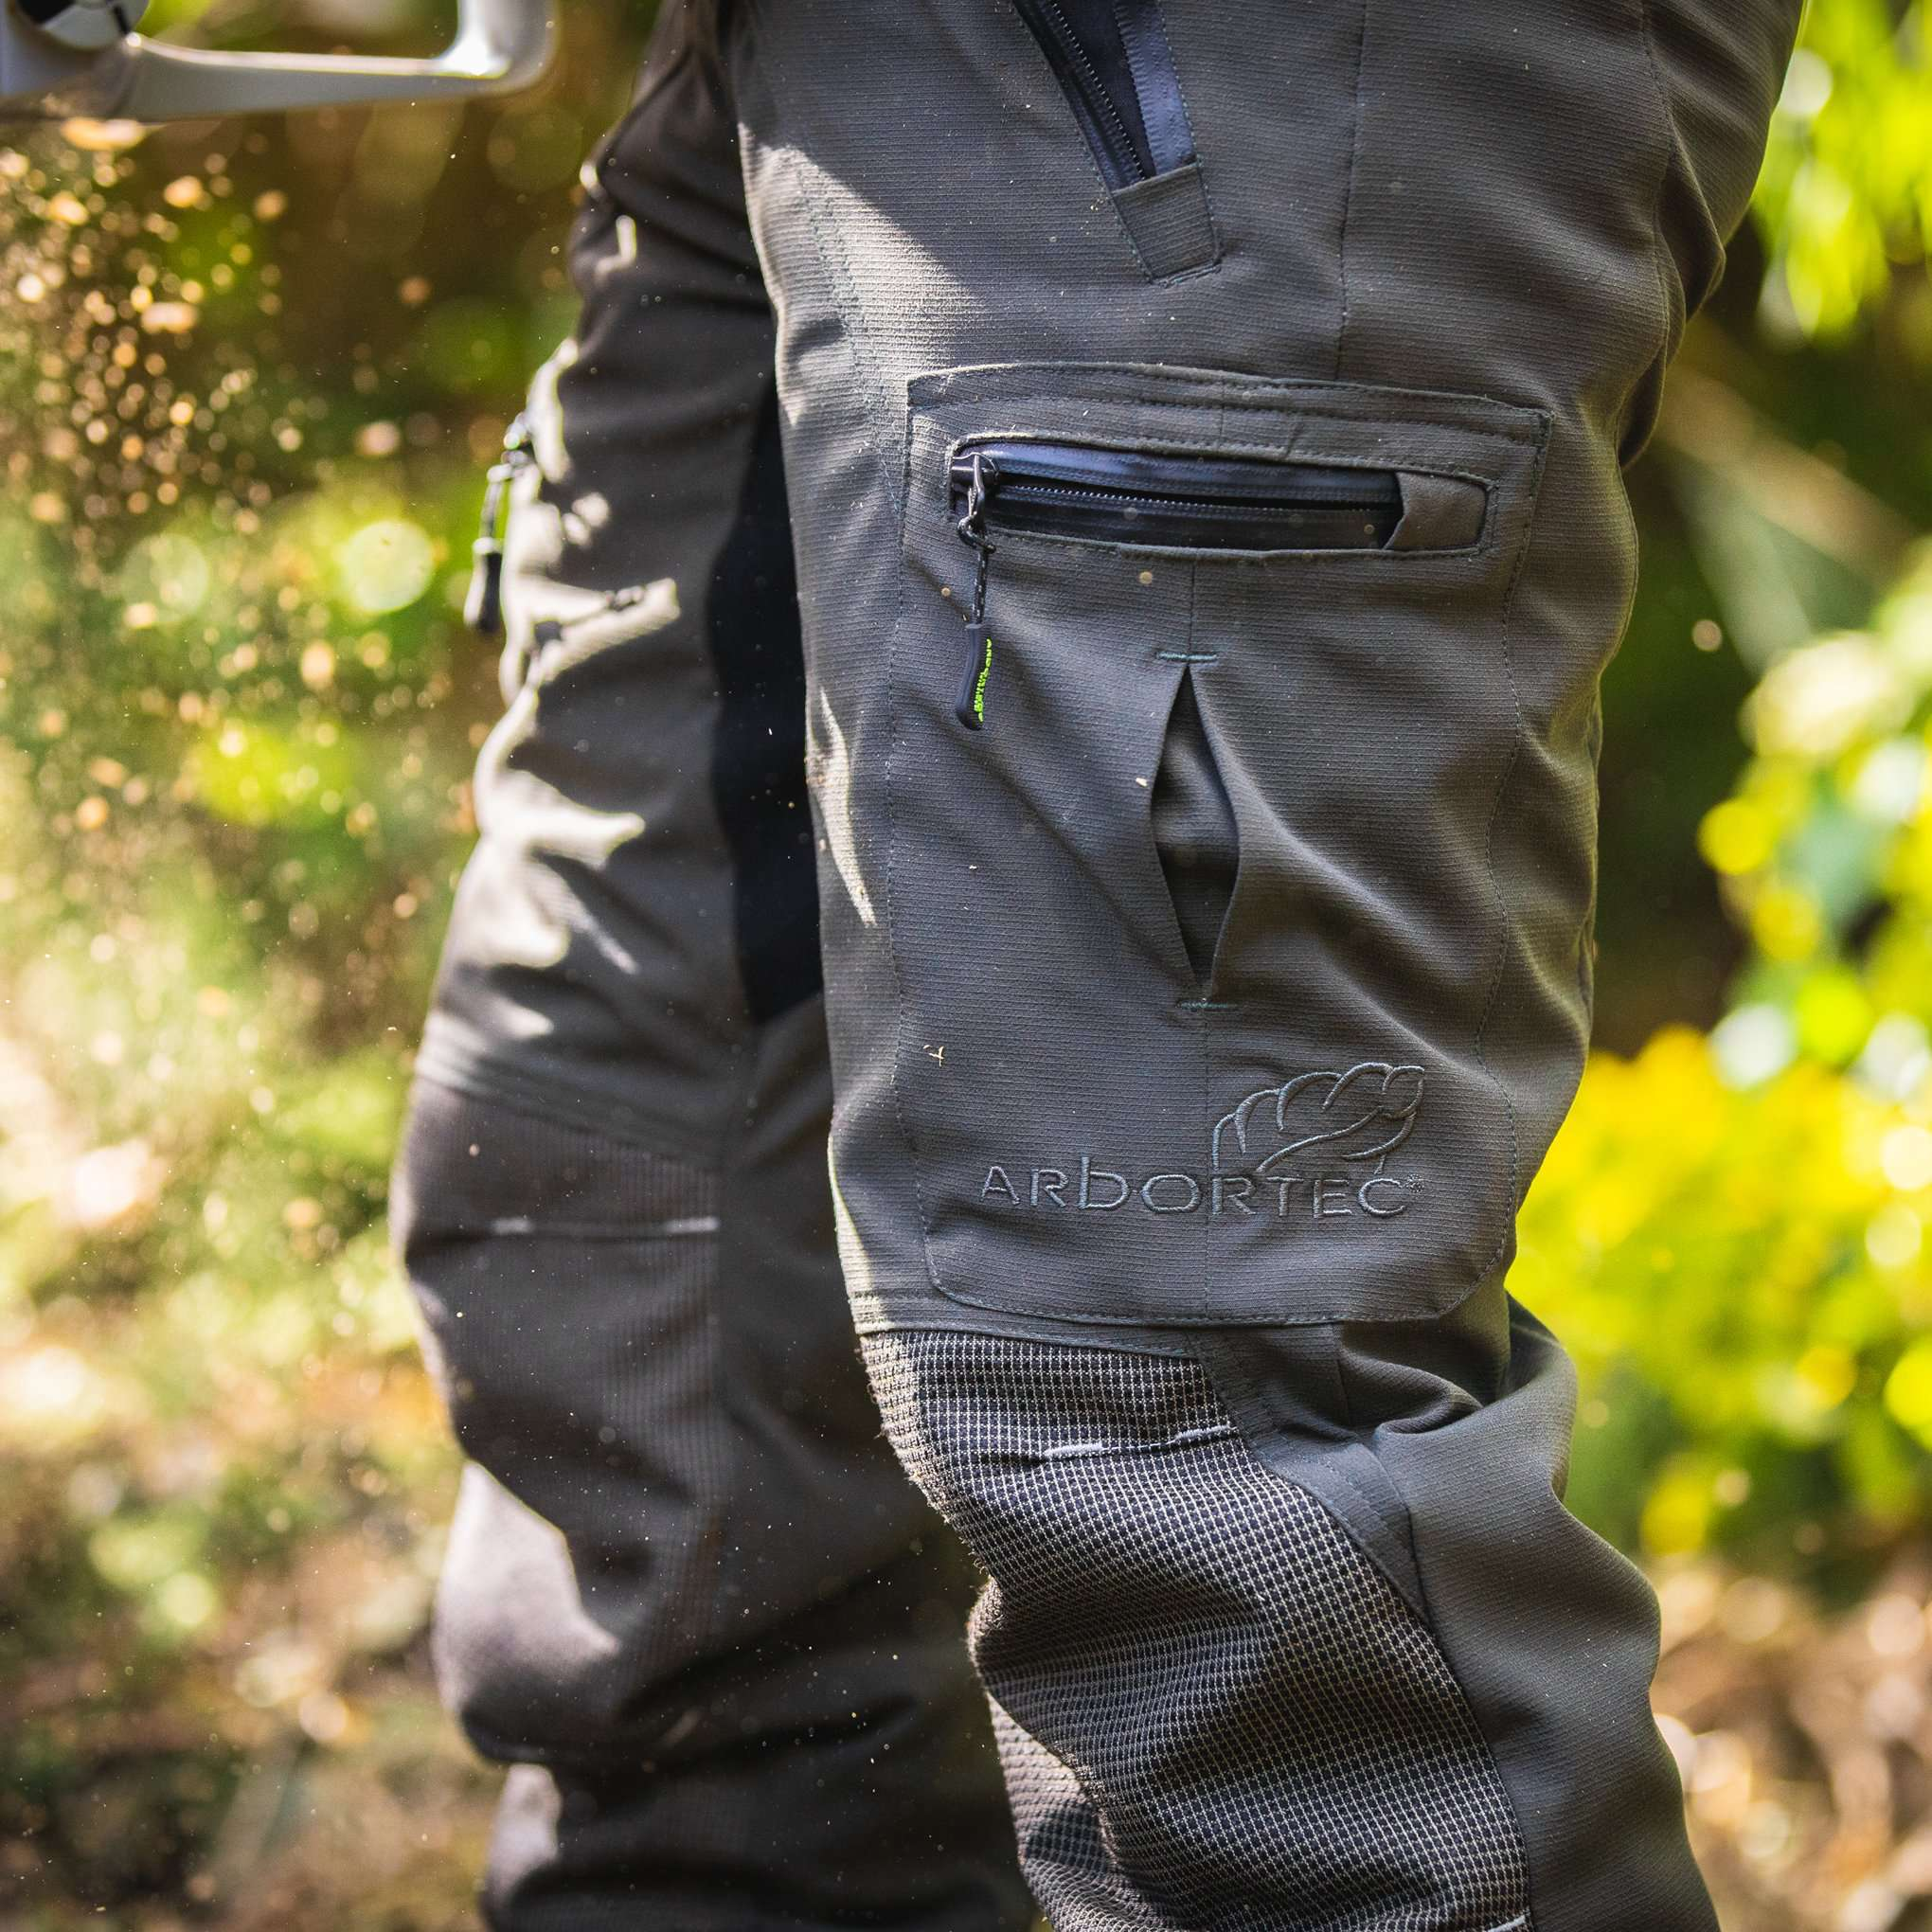 AT4070 Breatheflex Pro Type C Class 1 Chainsaw Trousers - Olive